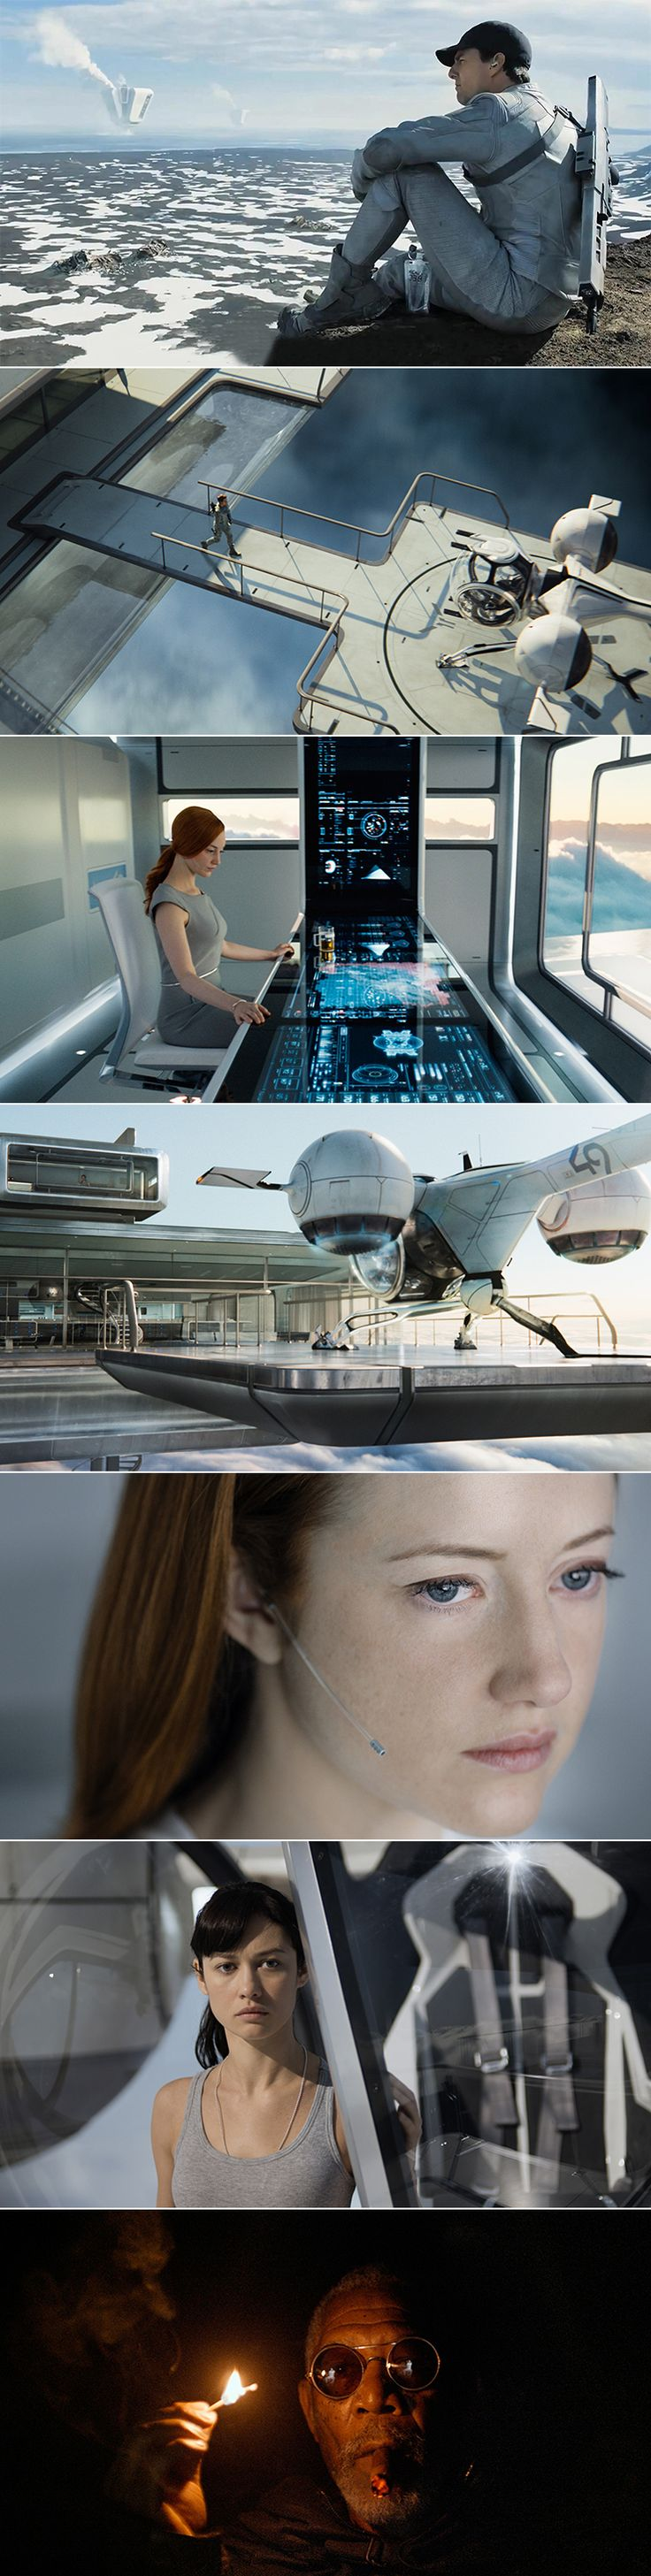 Oblivion (2013) Re-watched this movie twice - it is beautifully filmed, special effects, style and graphics are mesmerising, and also I love the various transformations of Andrea Riseborough!